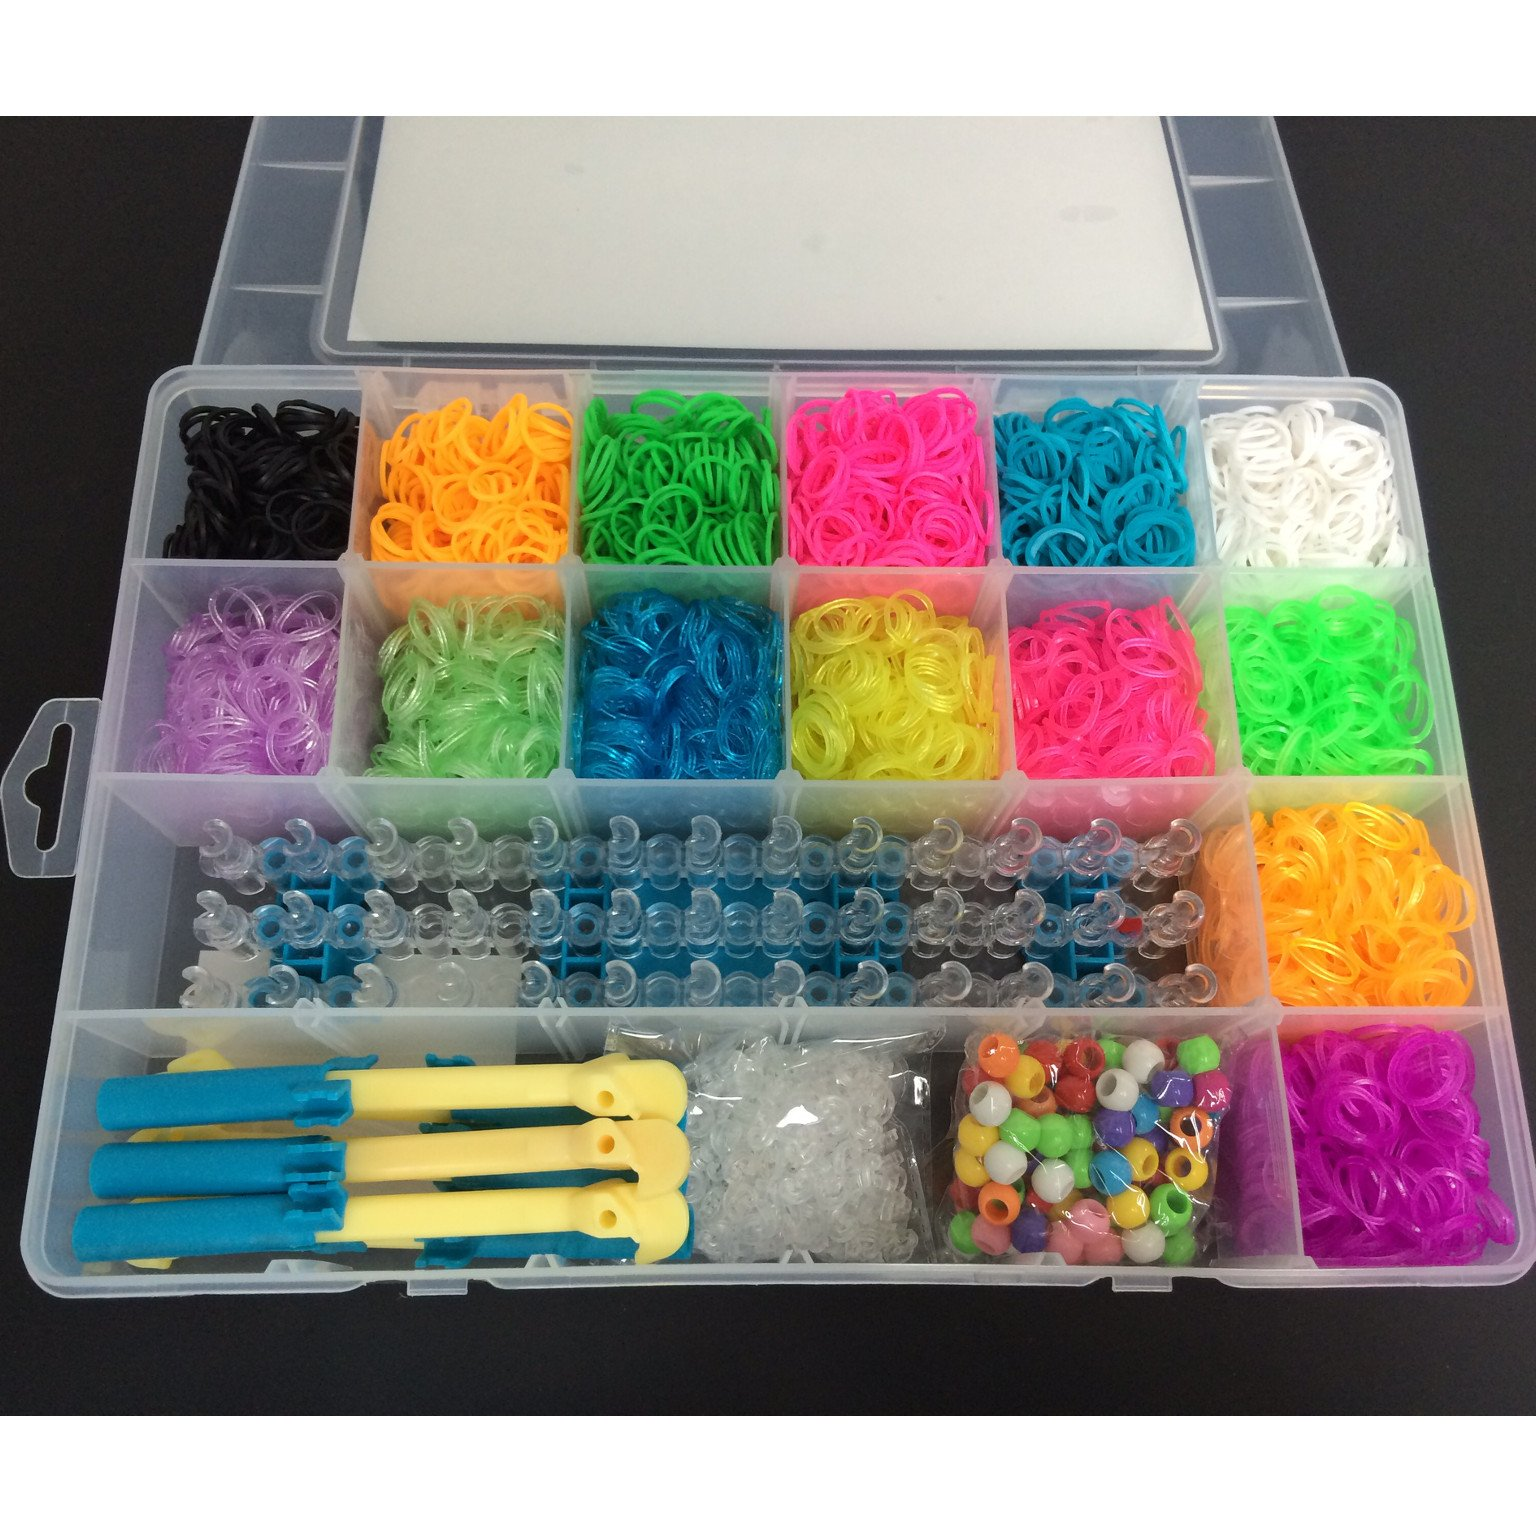 Loopy Loom 6000 Bands Delux Box Set Rubber Bracelet Making Kit with 100 Charms